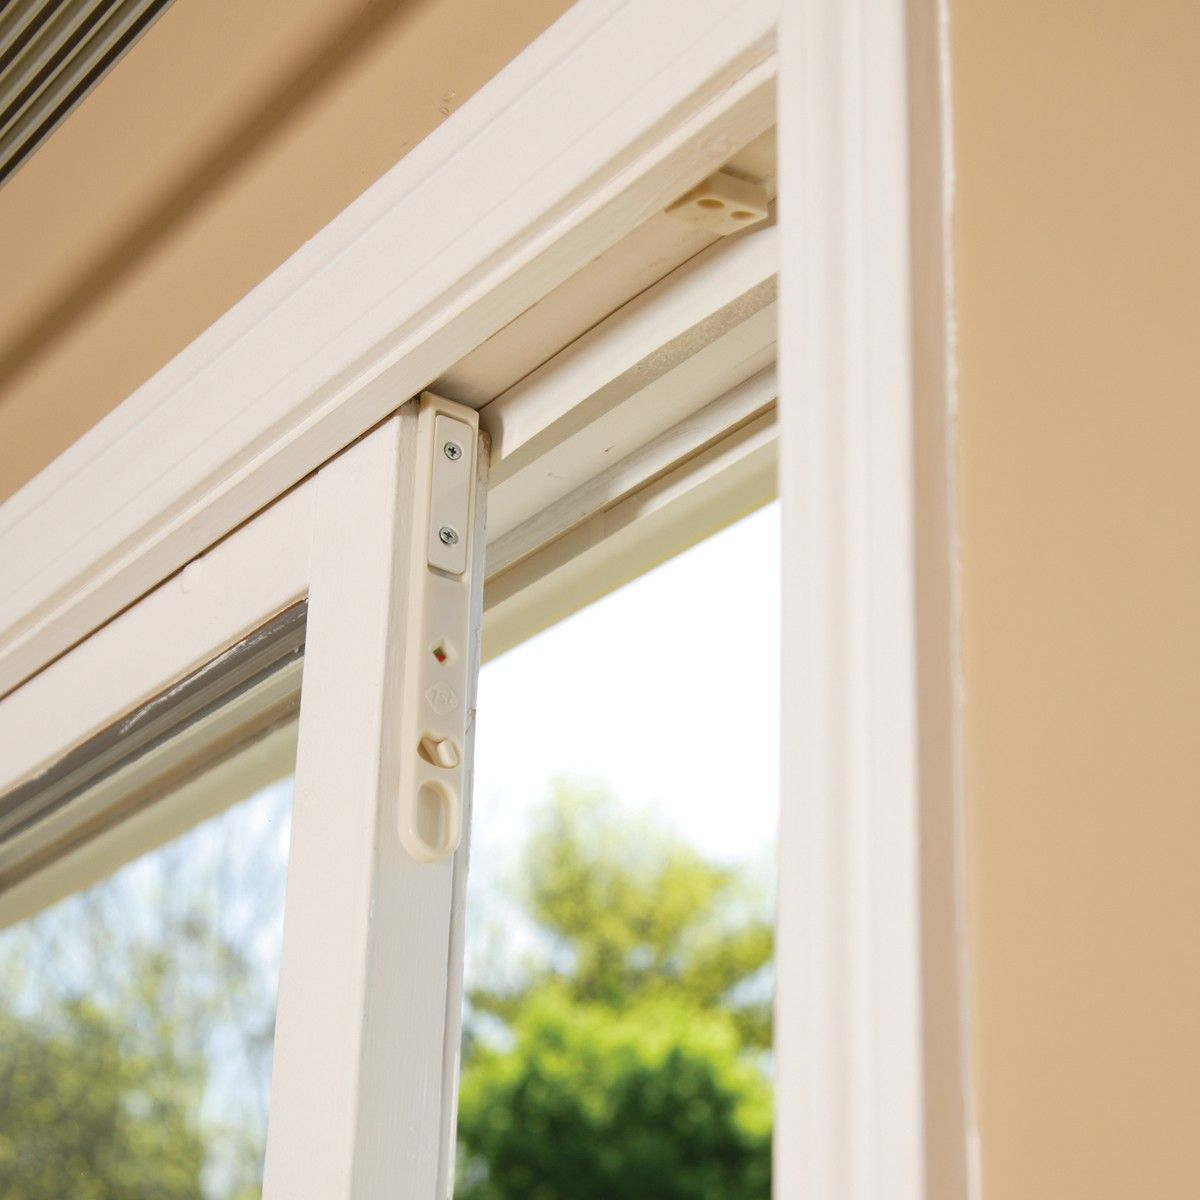 Sliding Door Child Lock - Home Safety - they stil could open the ...